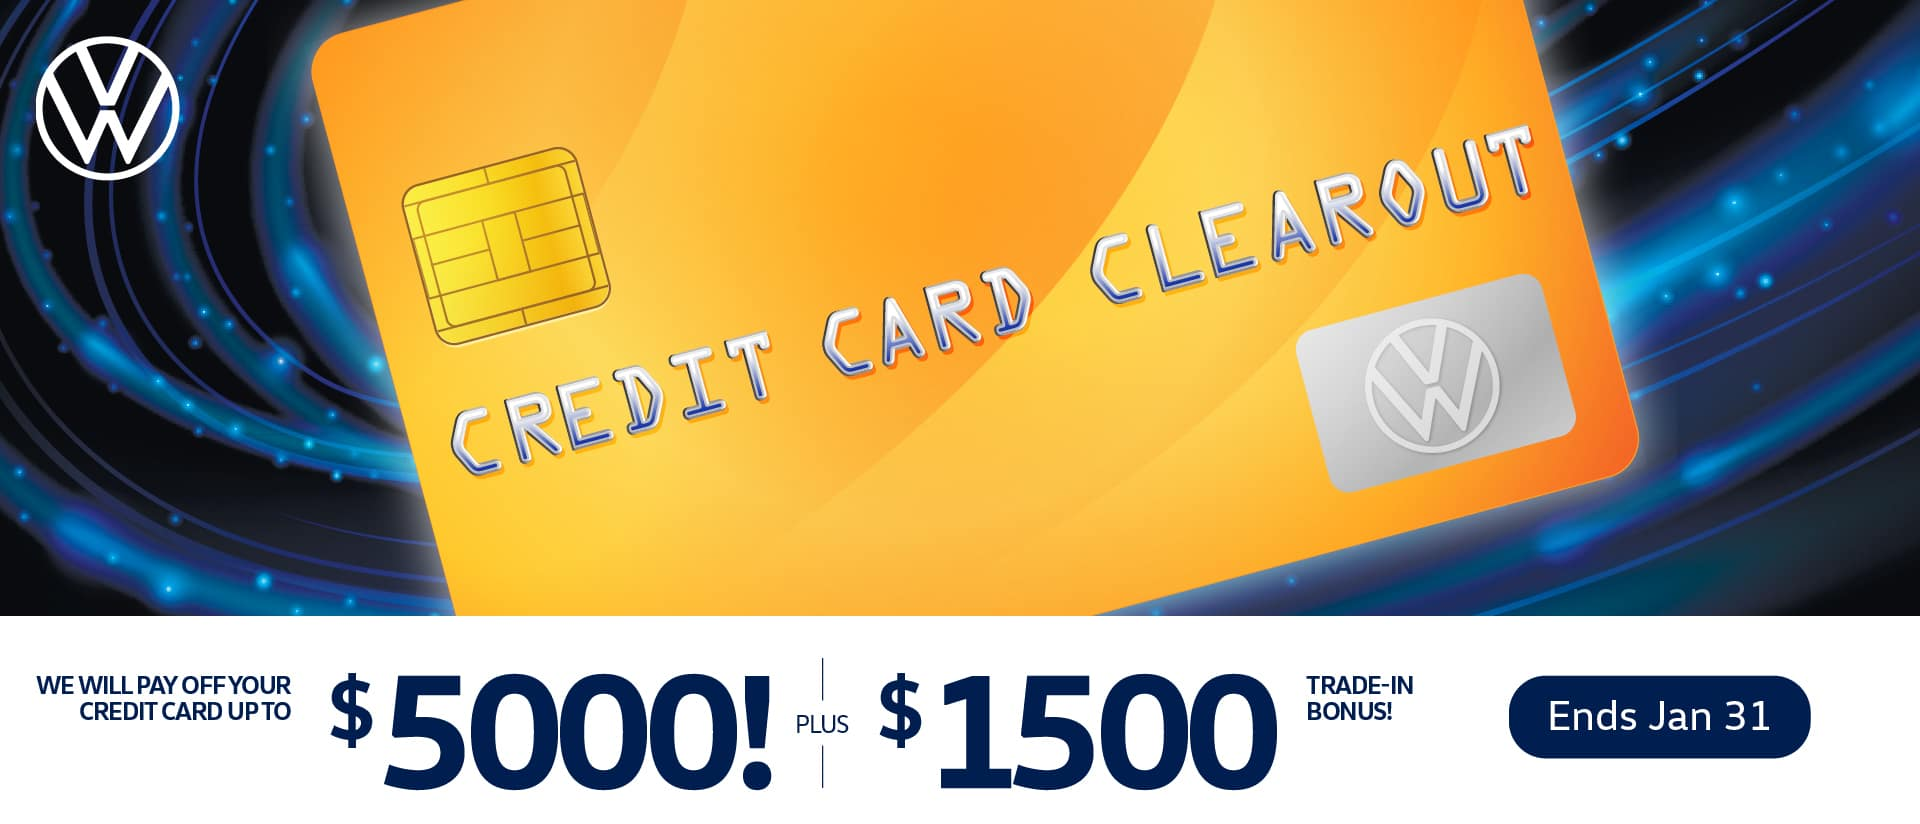 1476197_MRV_Credit Card Clearout WB